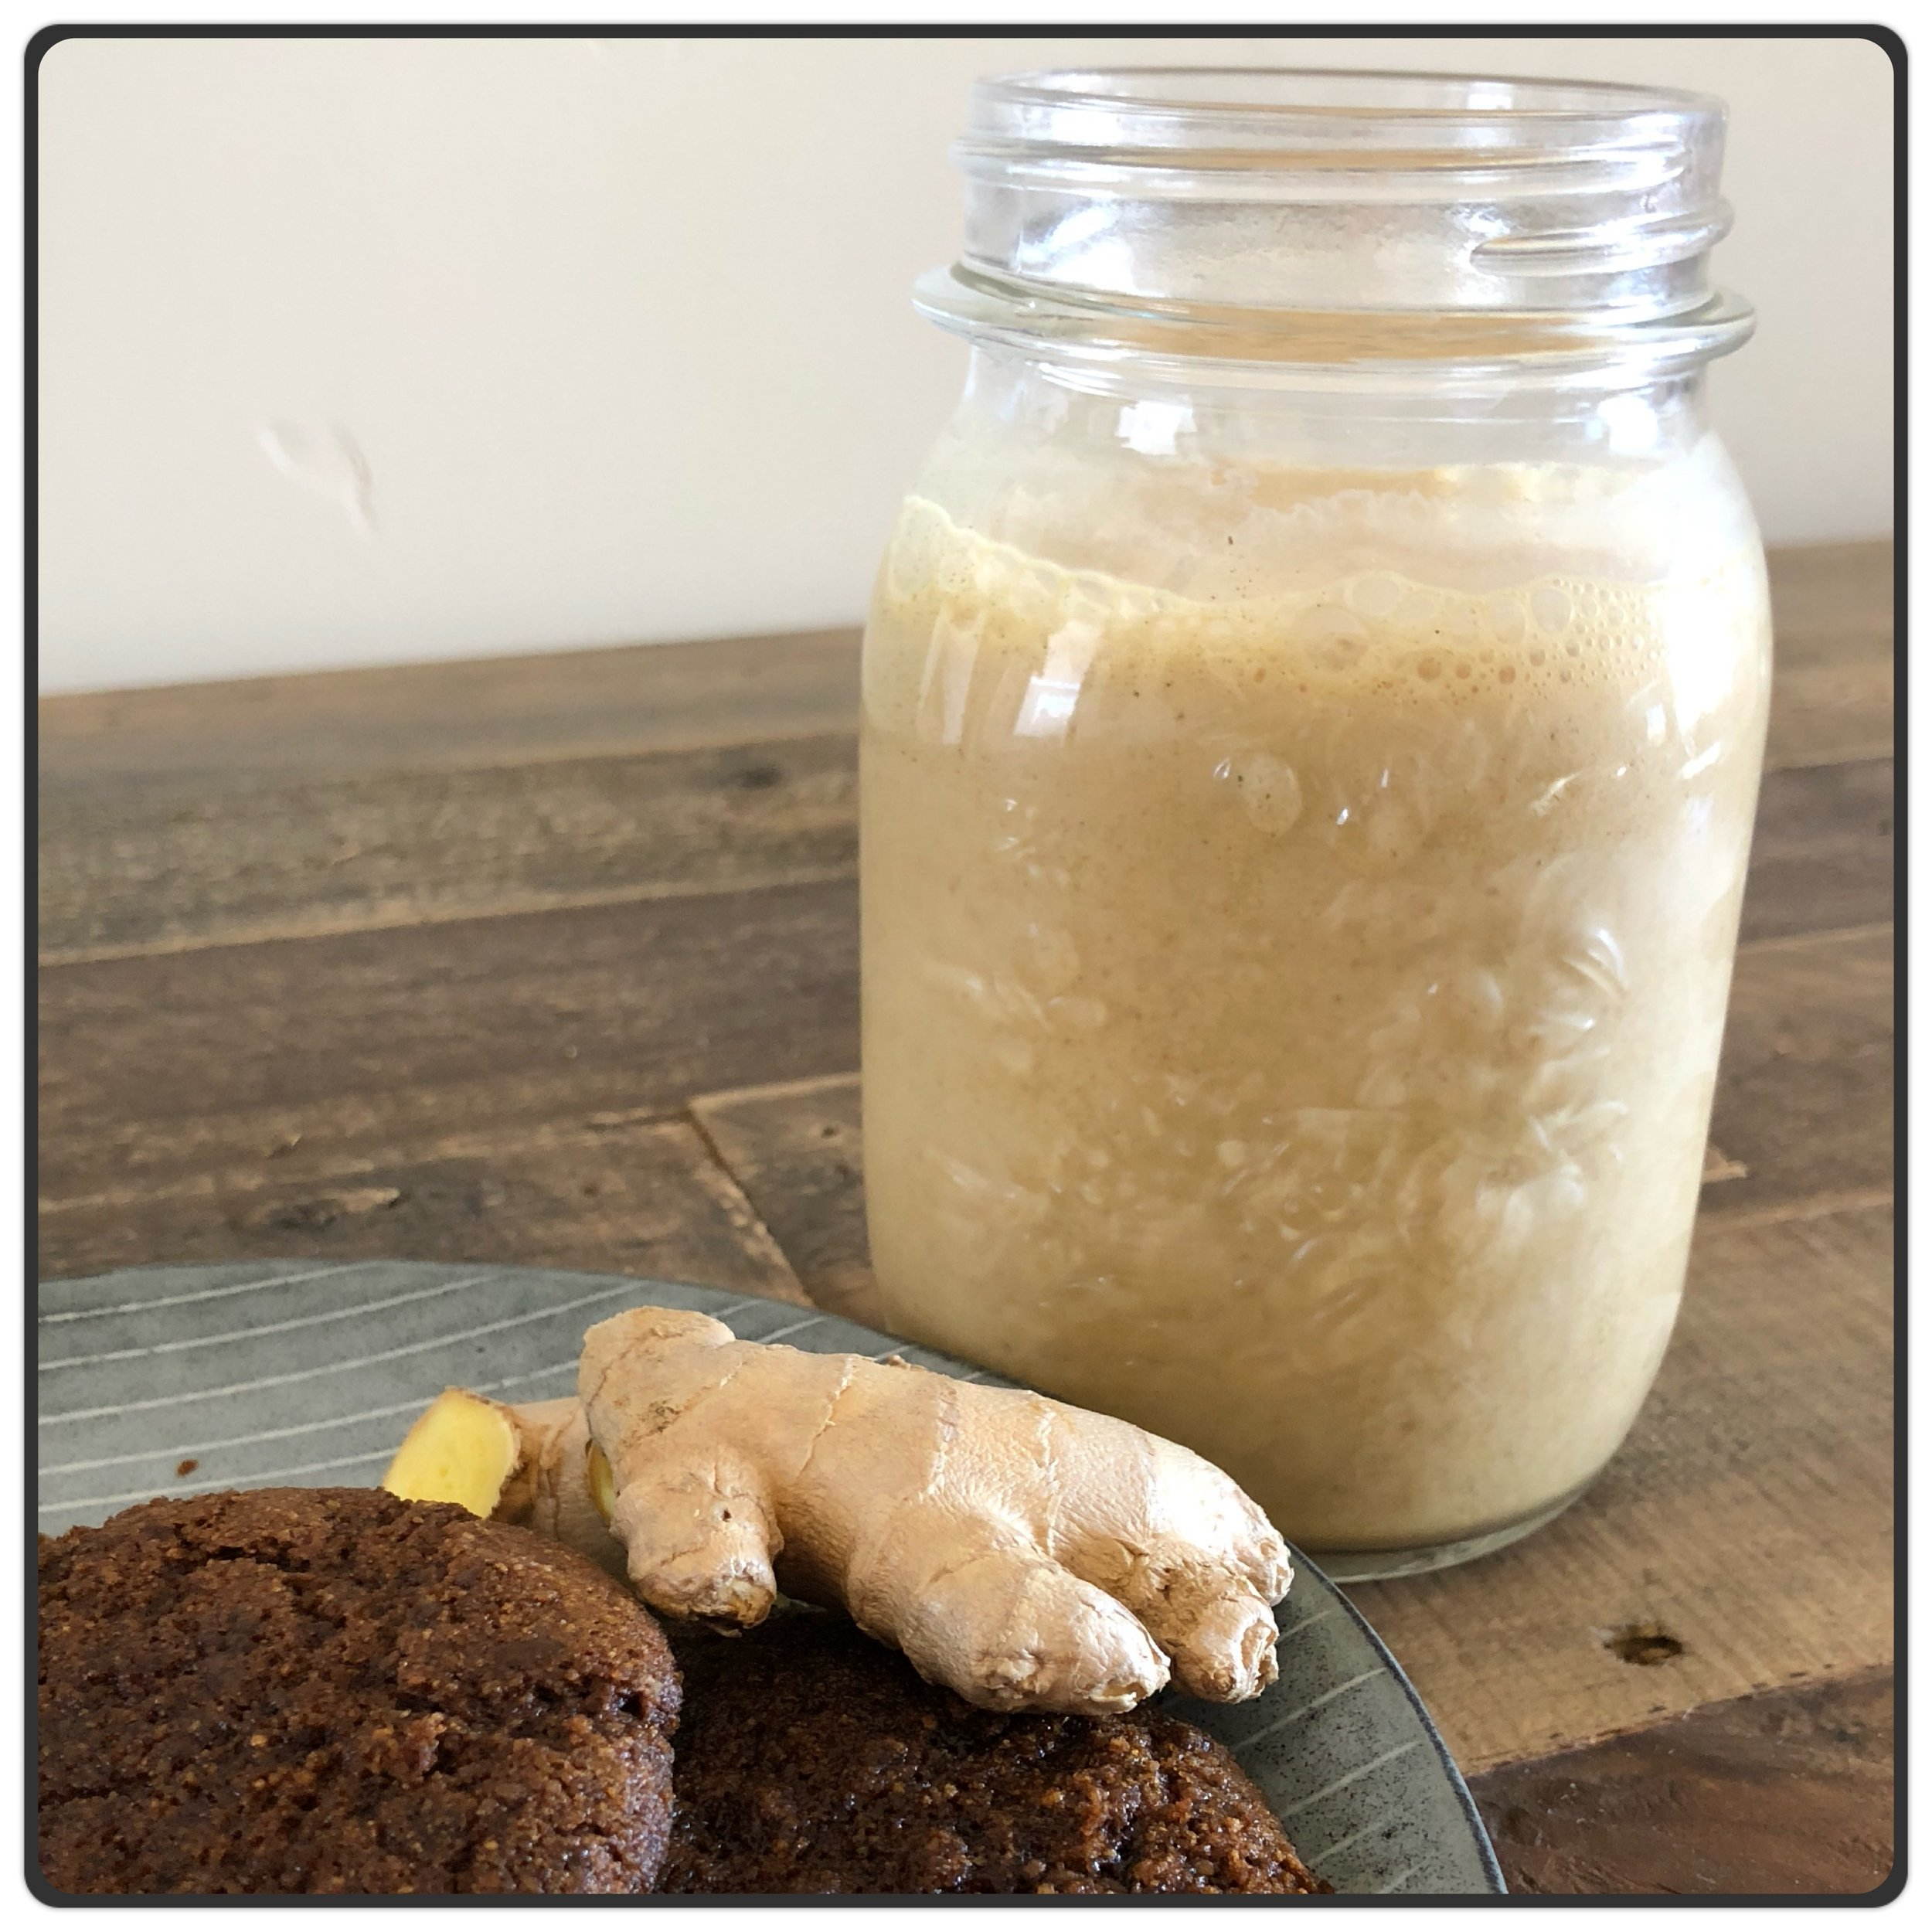 Ginger Molasses Smoothie   1/2 cup Almond Milk (unsweetened) 1/2 cup Plain Greek Yogurt (full fat) 3 tbsp Collagen Protein 2/3 cup Ice Cubes 1 tsp Ginger (freshly grated) 2 tbsp Blackstrap Molasses 1/2 tsp Cinnamon  Optional: pinch of Cardamom, 1/4 tsp Vanilla Extract  Directions:  Combine all ingredients together in a blender and blend on high until smooth.